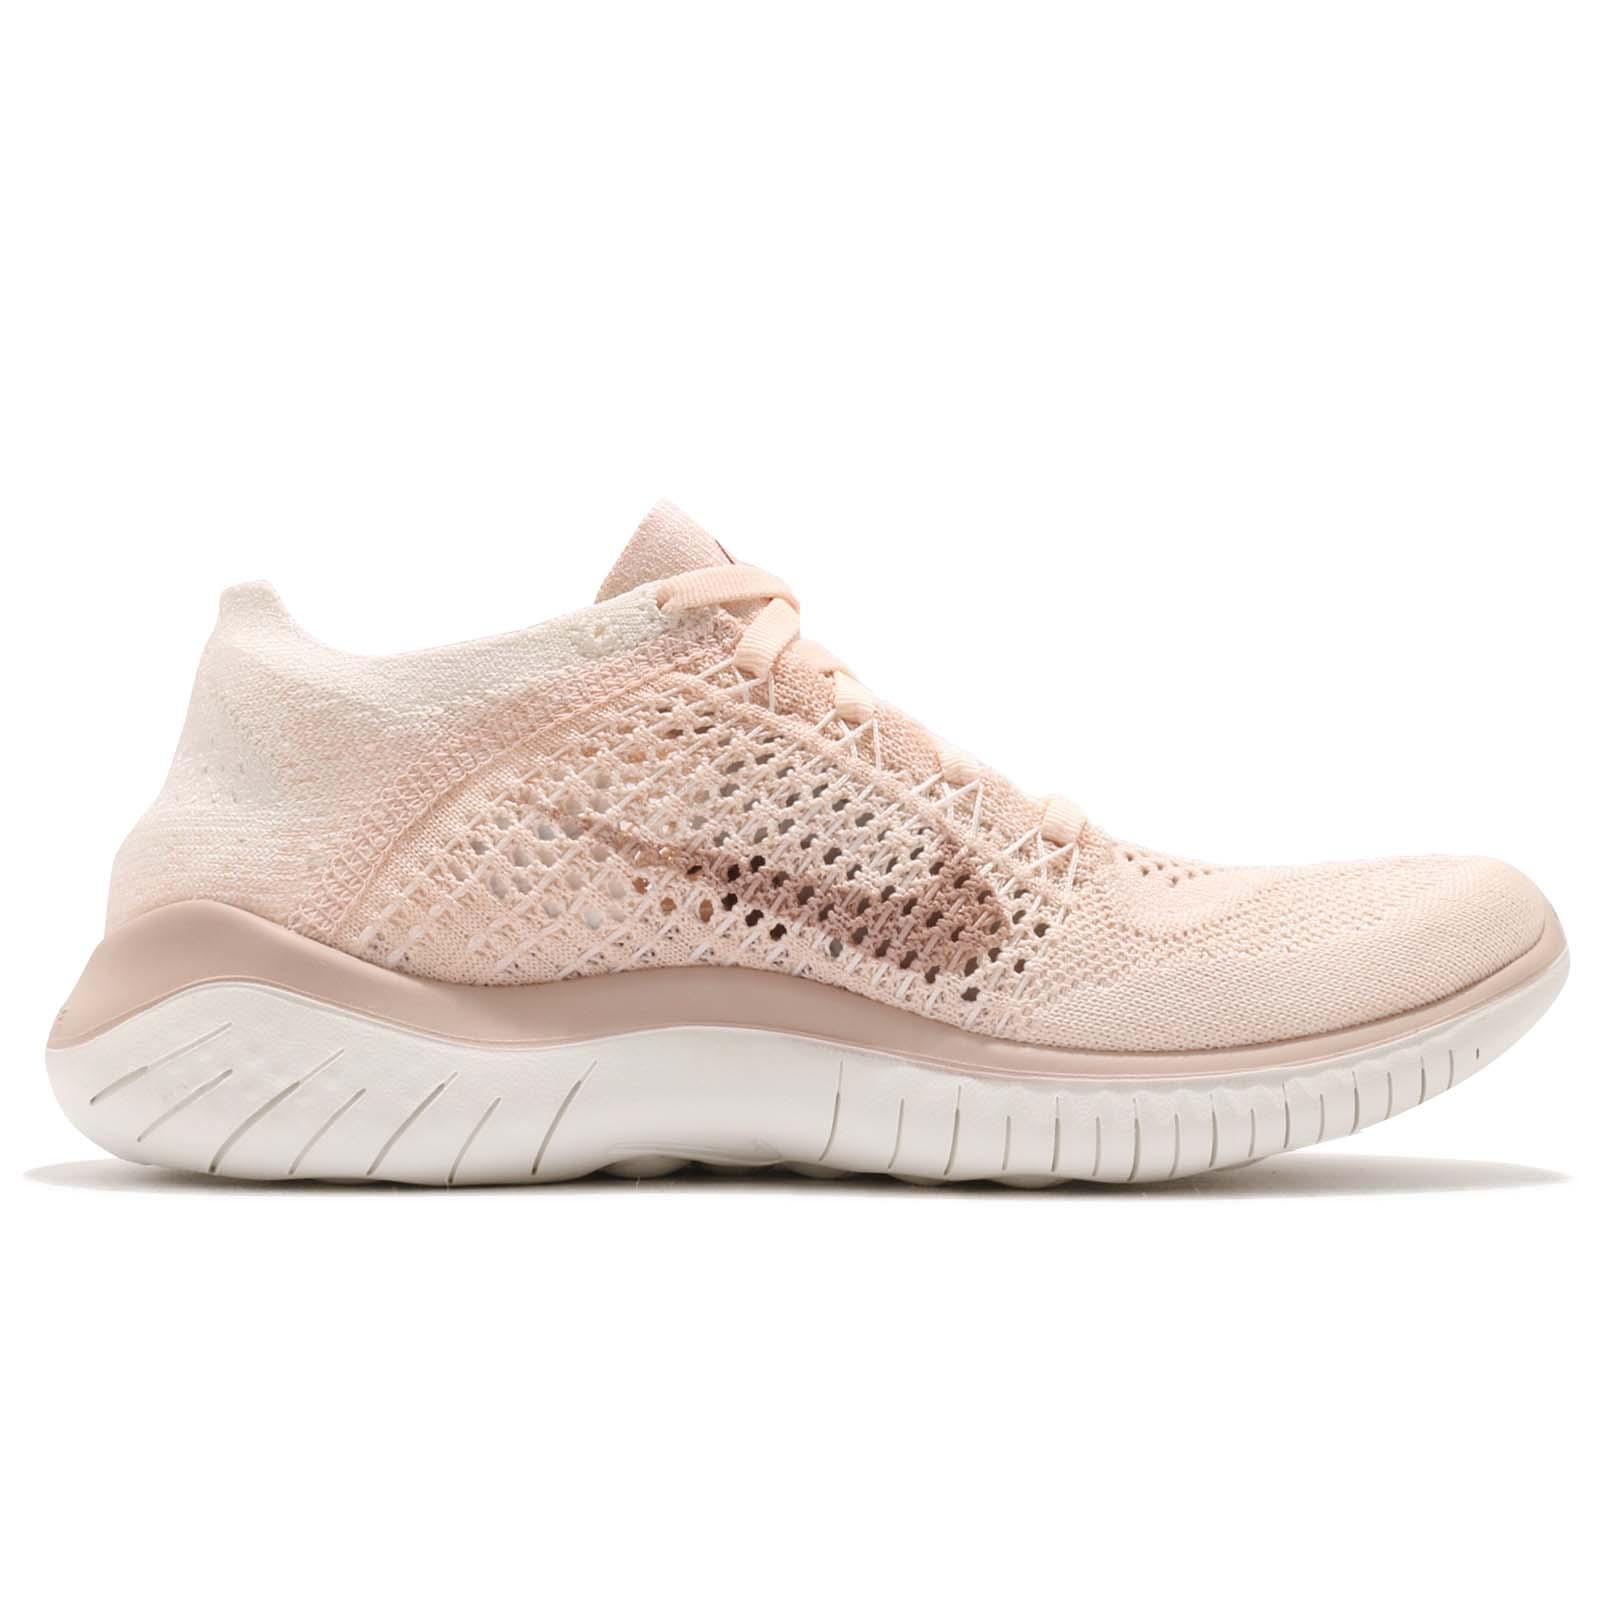 Nike Wmns Free RN Flyknit 2018 Guava Ice Beige Women Running Shoes ... c96be5c2a